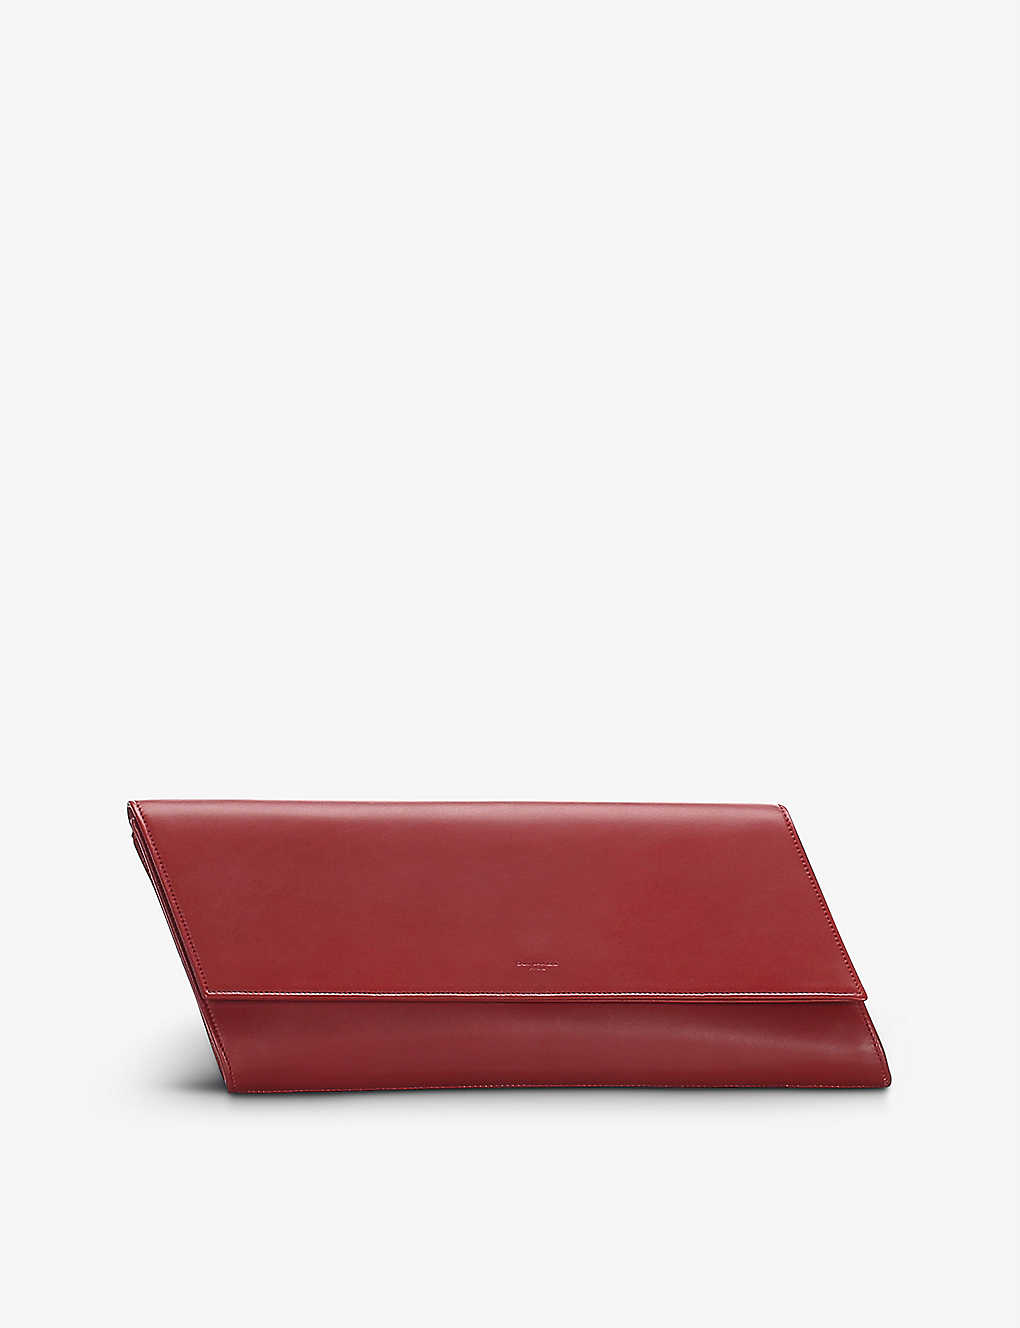 RESELLFRIDGES: Pre-loved Saint Laurent Diagonale leather clutch